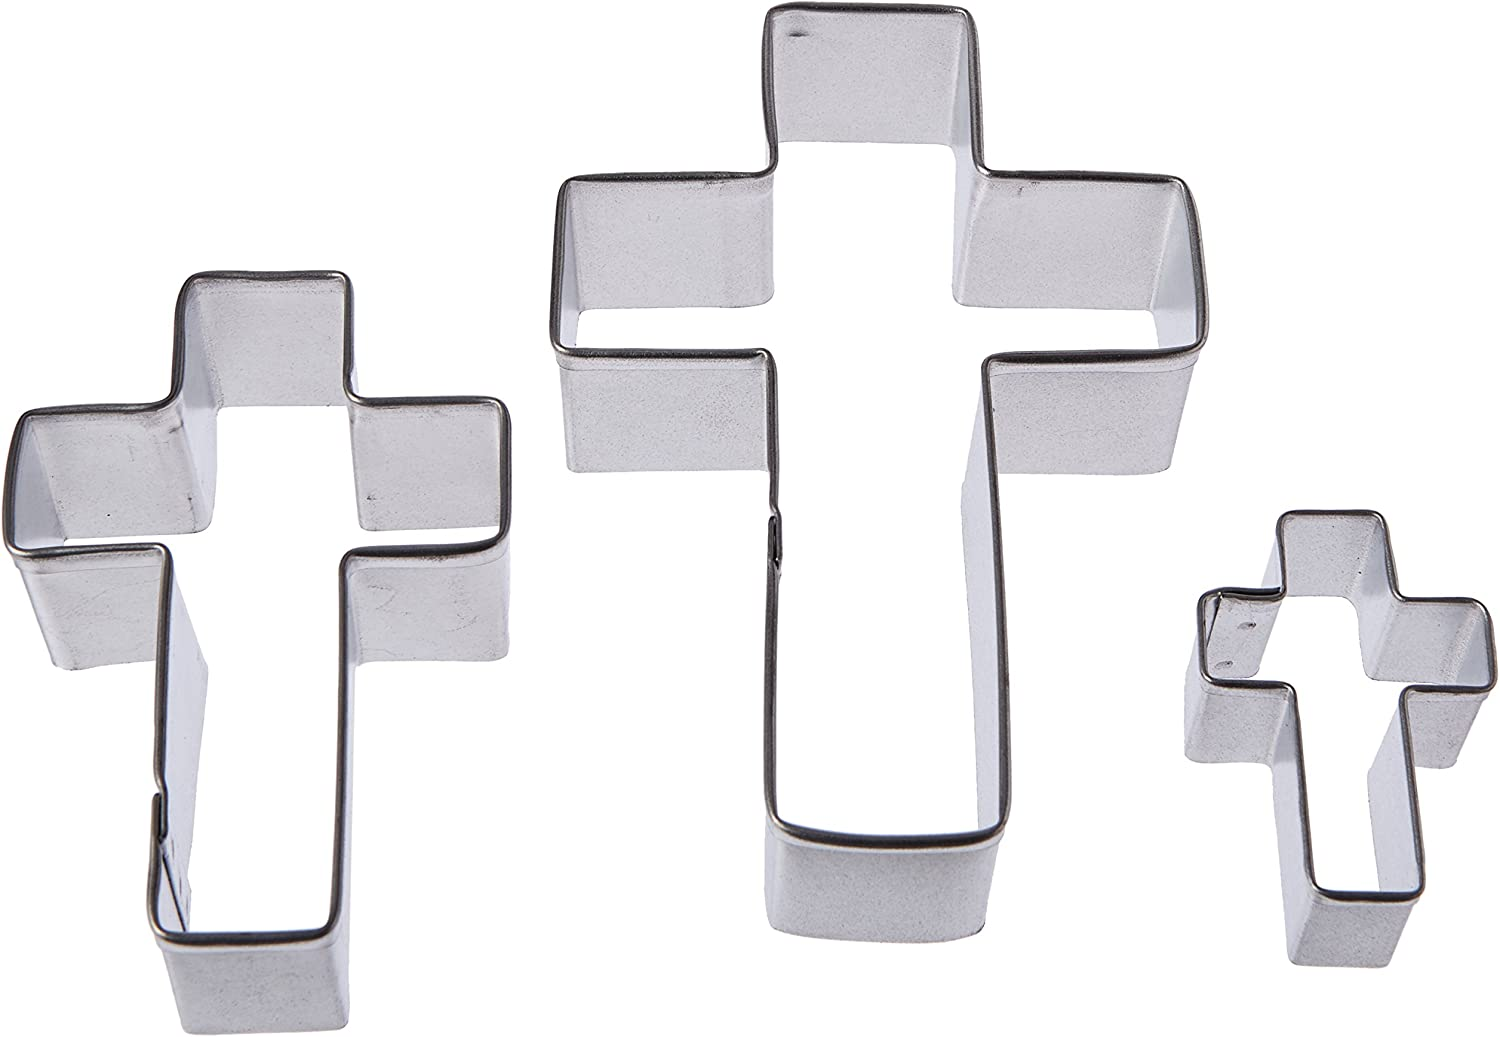 RM International Cross Indianapolis Mall Cookie Sizes Assorted Cutters Fees free!! 3-Piece